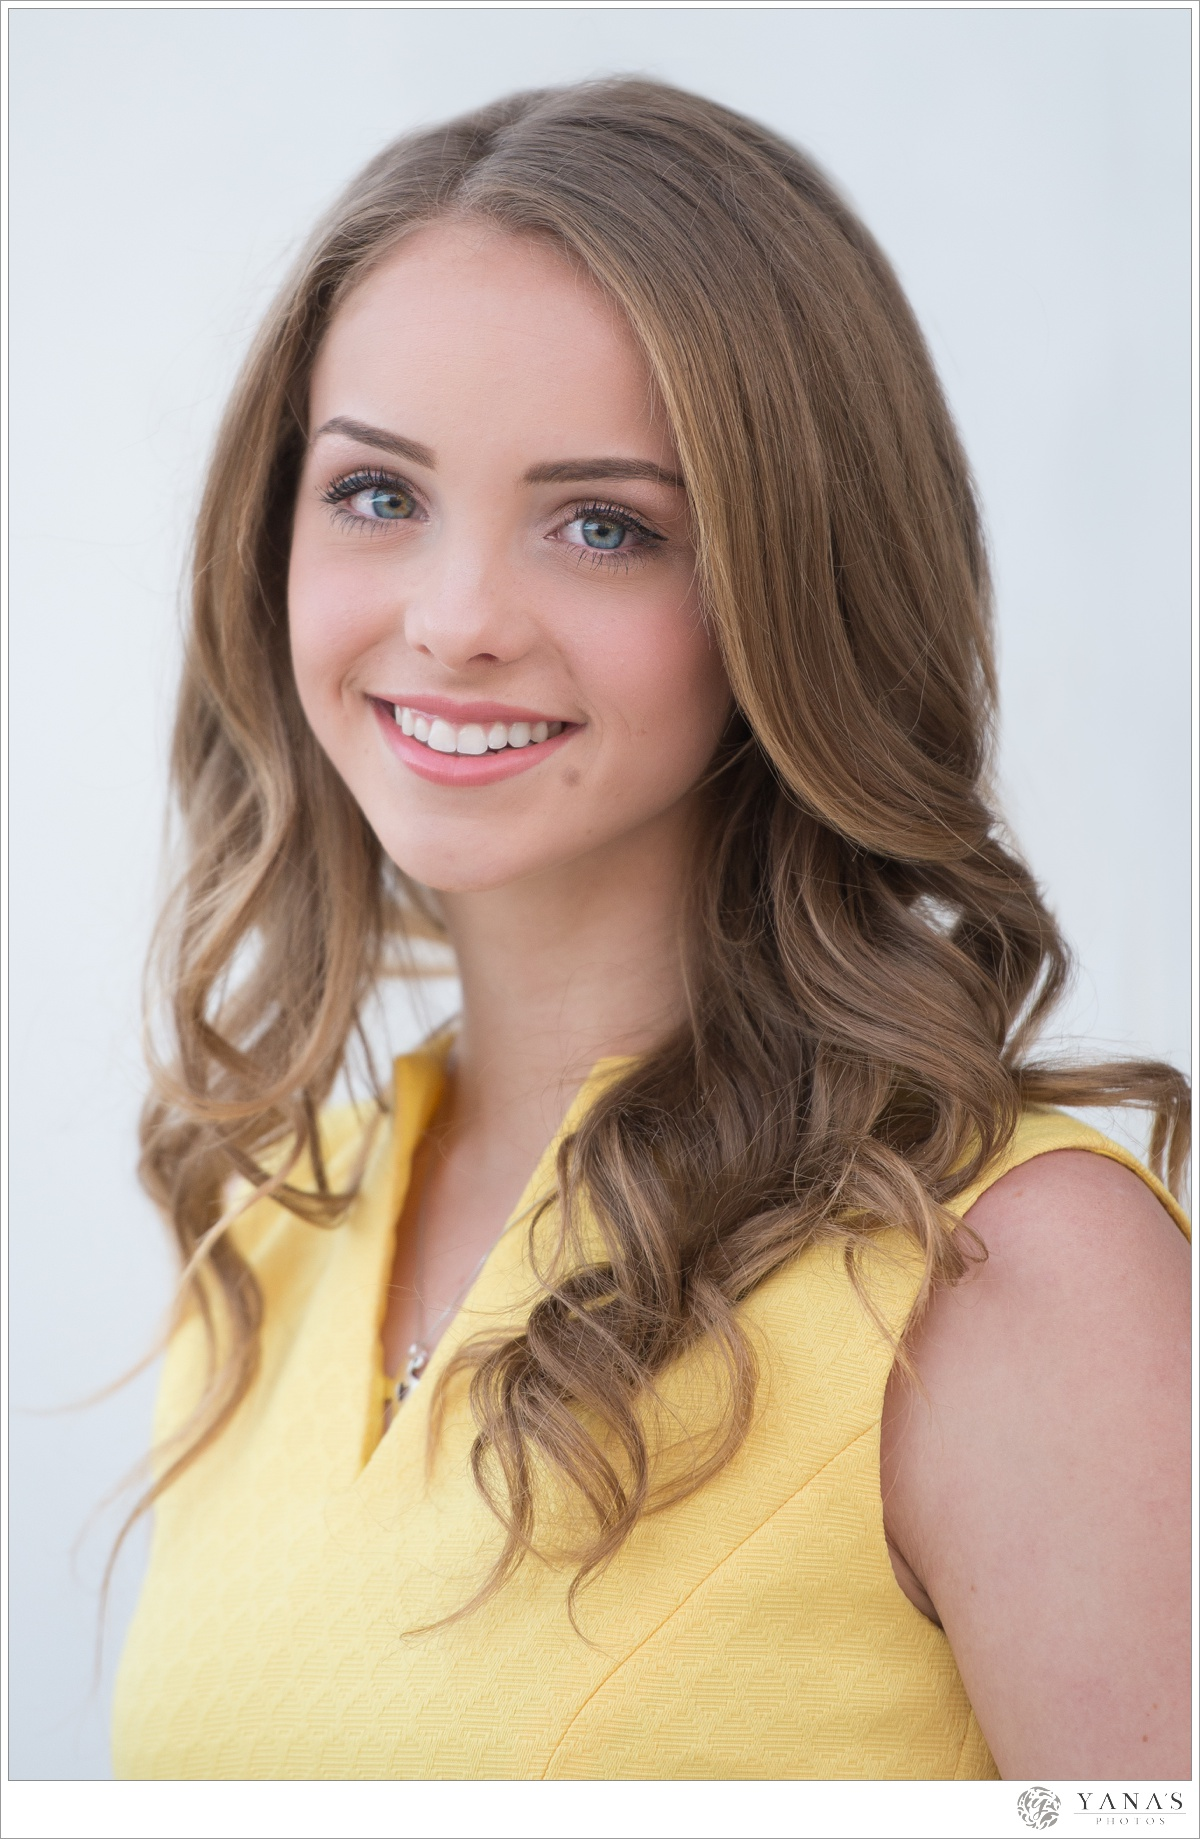 National miss teen fort worth texas have faced